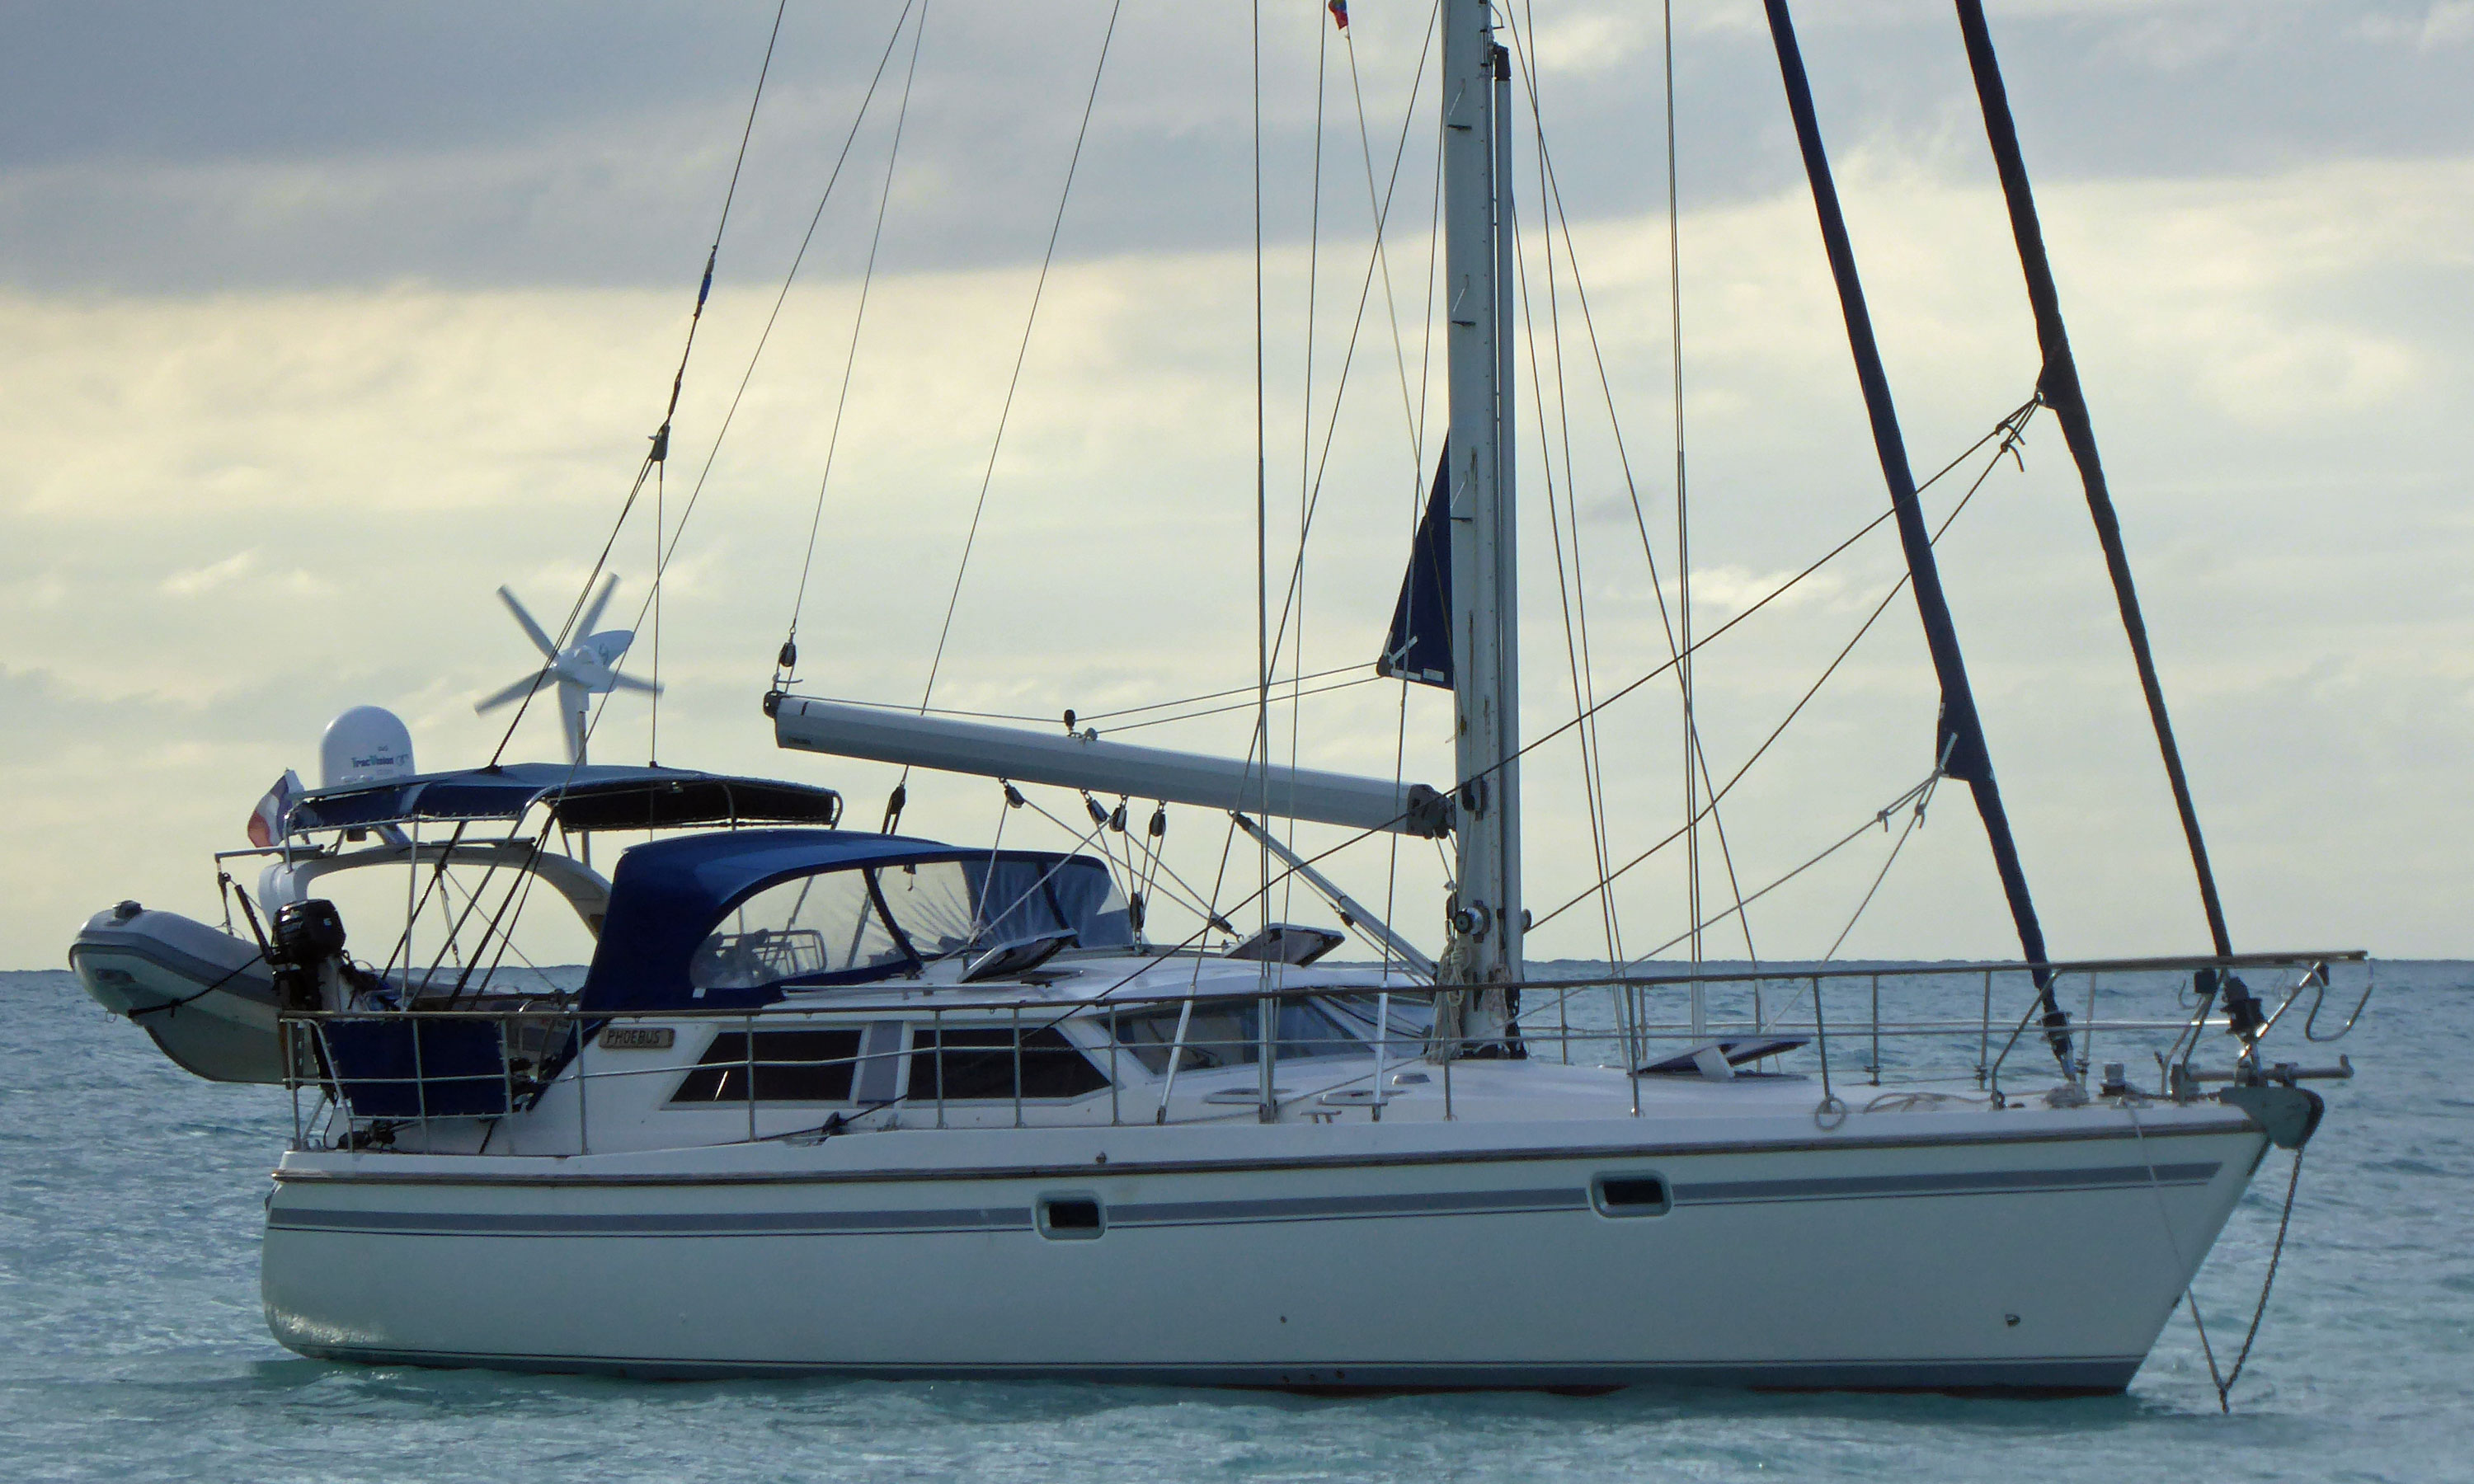 Moody Eclipse 43 cutter-rigged sailboat